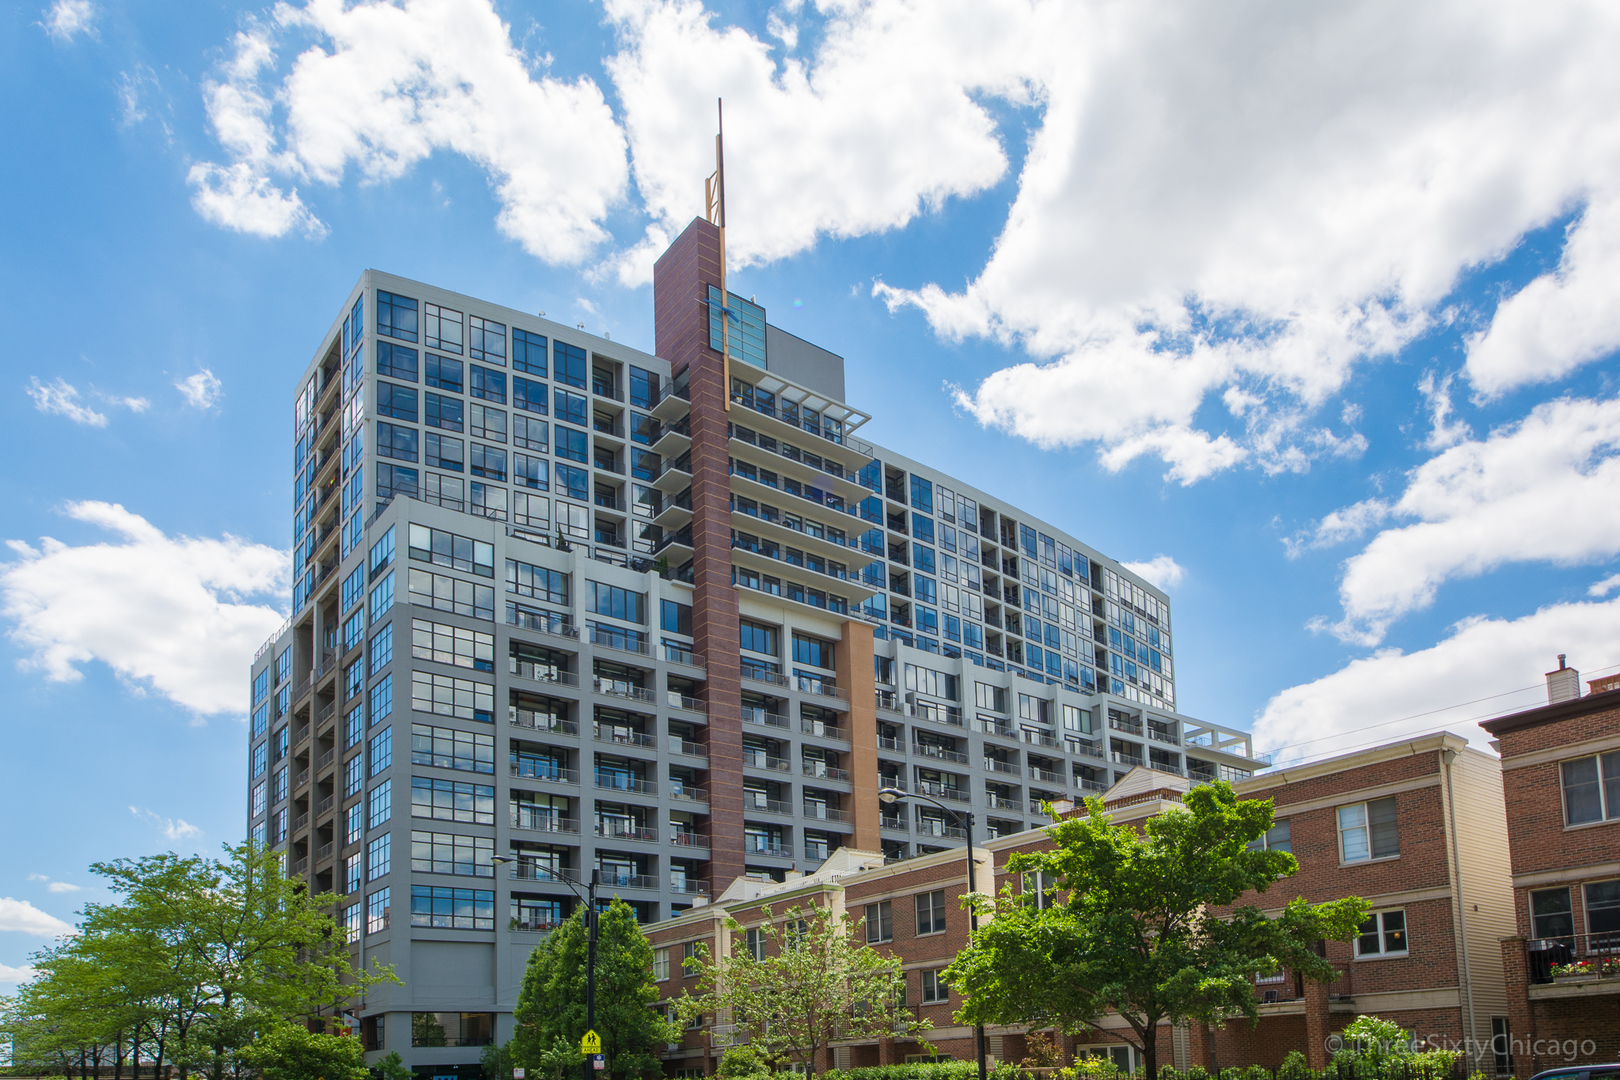 1530 SOUTH STATE STREET #14B, CHICAGO, IL 60605